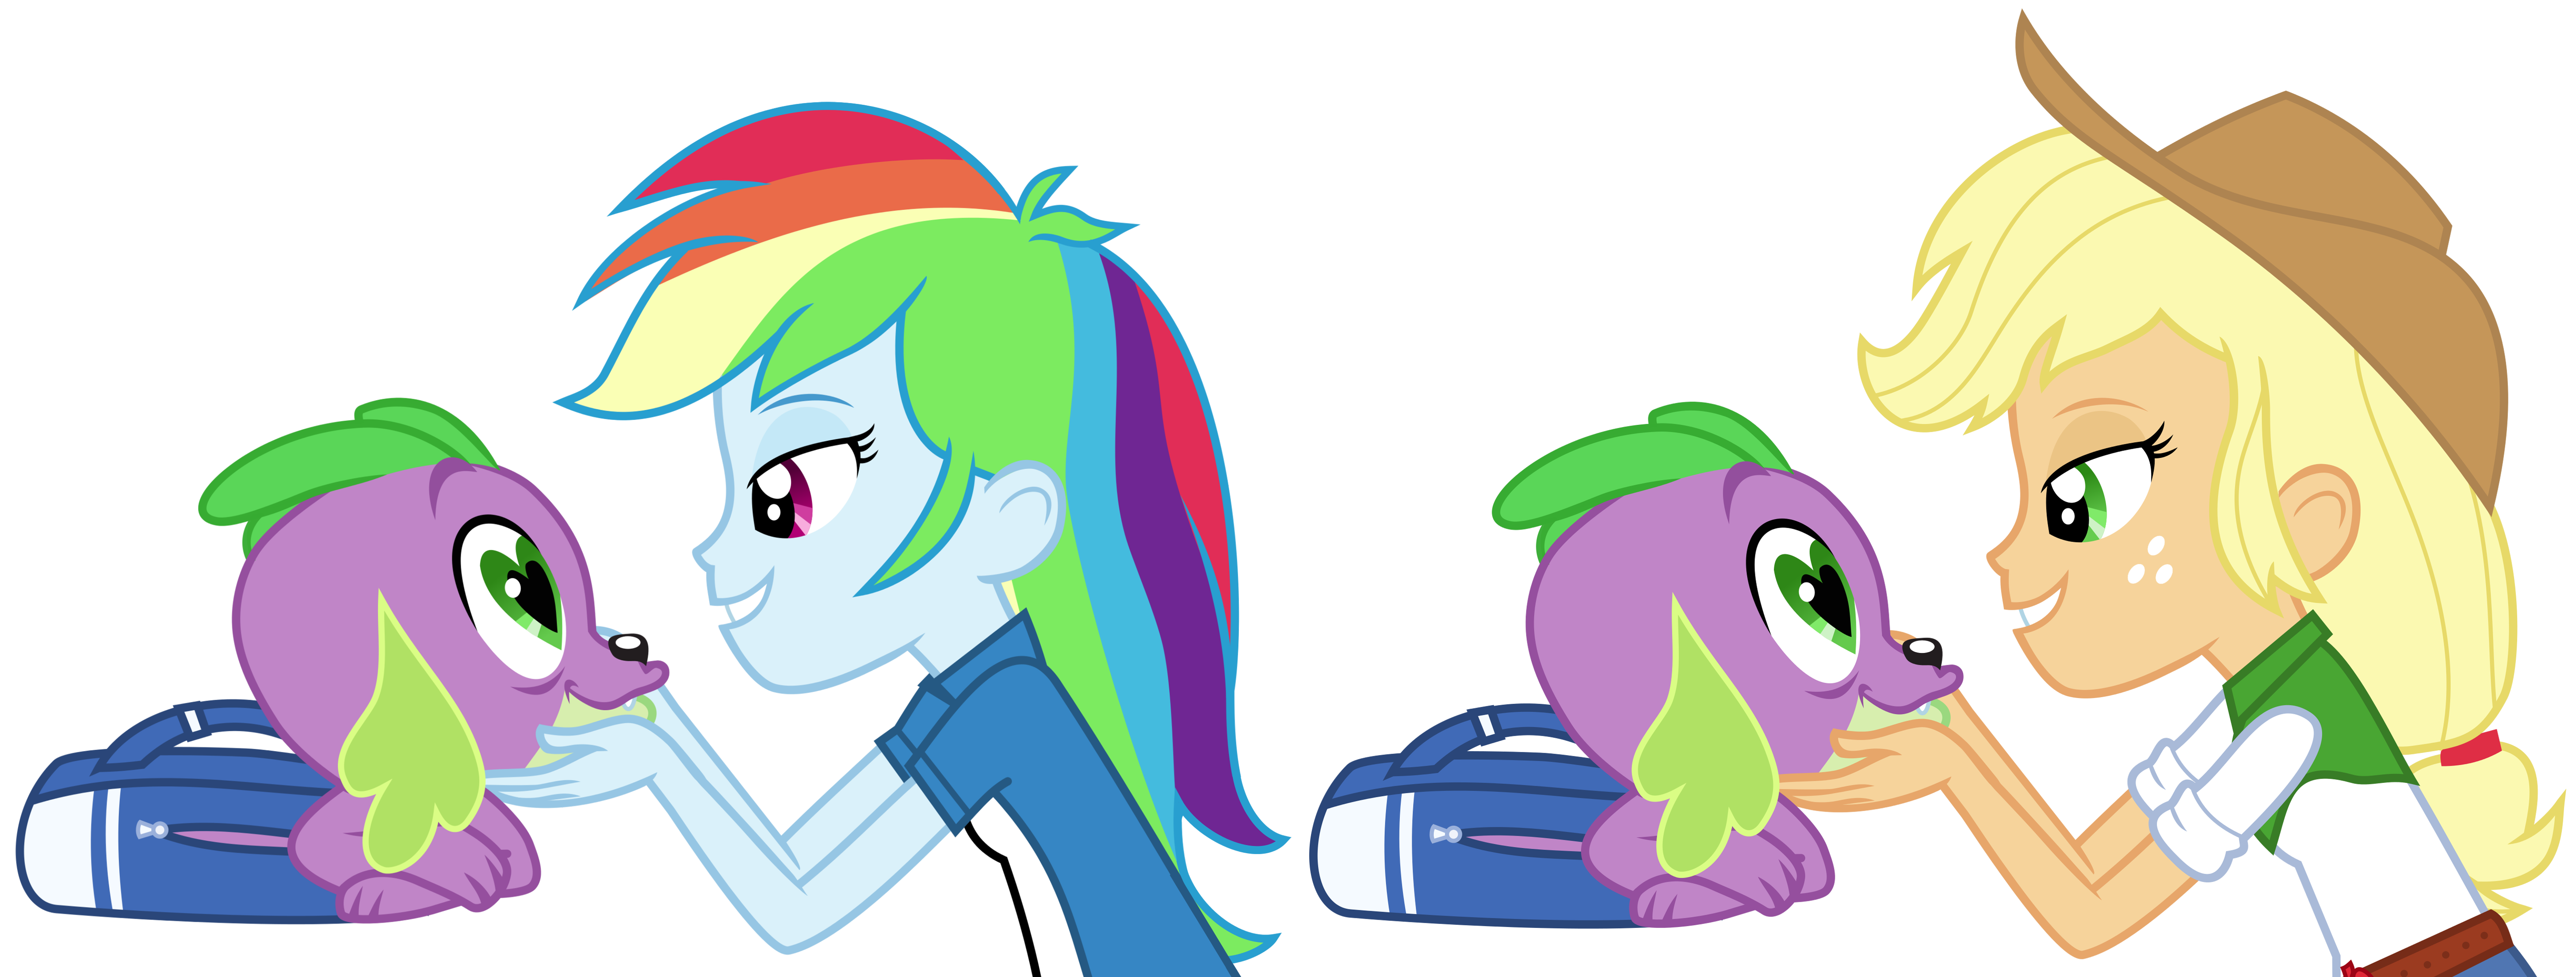 Spike Gets All The Equestria Girls Part 2 By Titanium